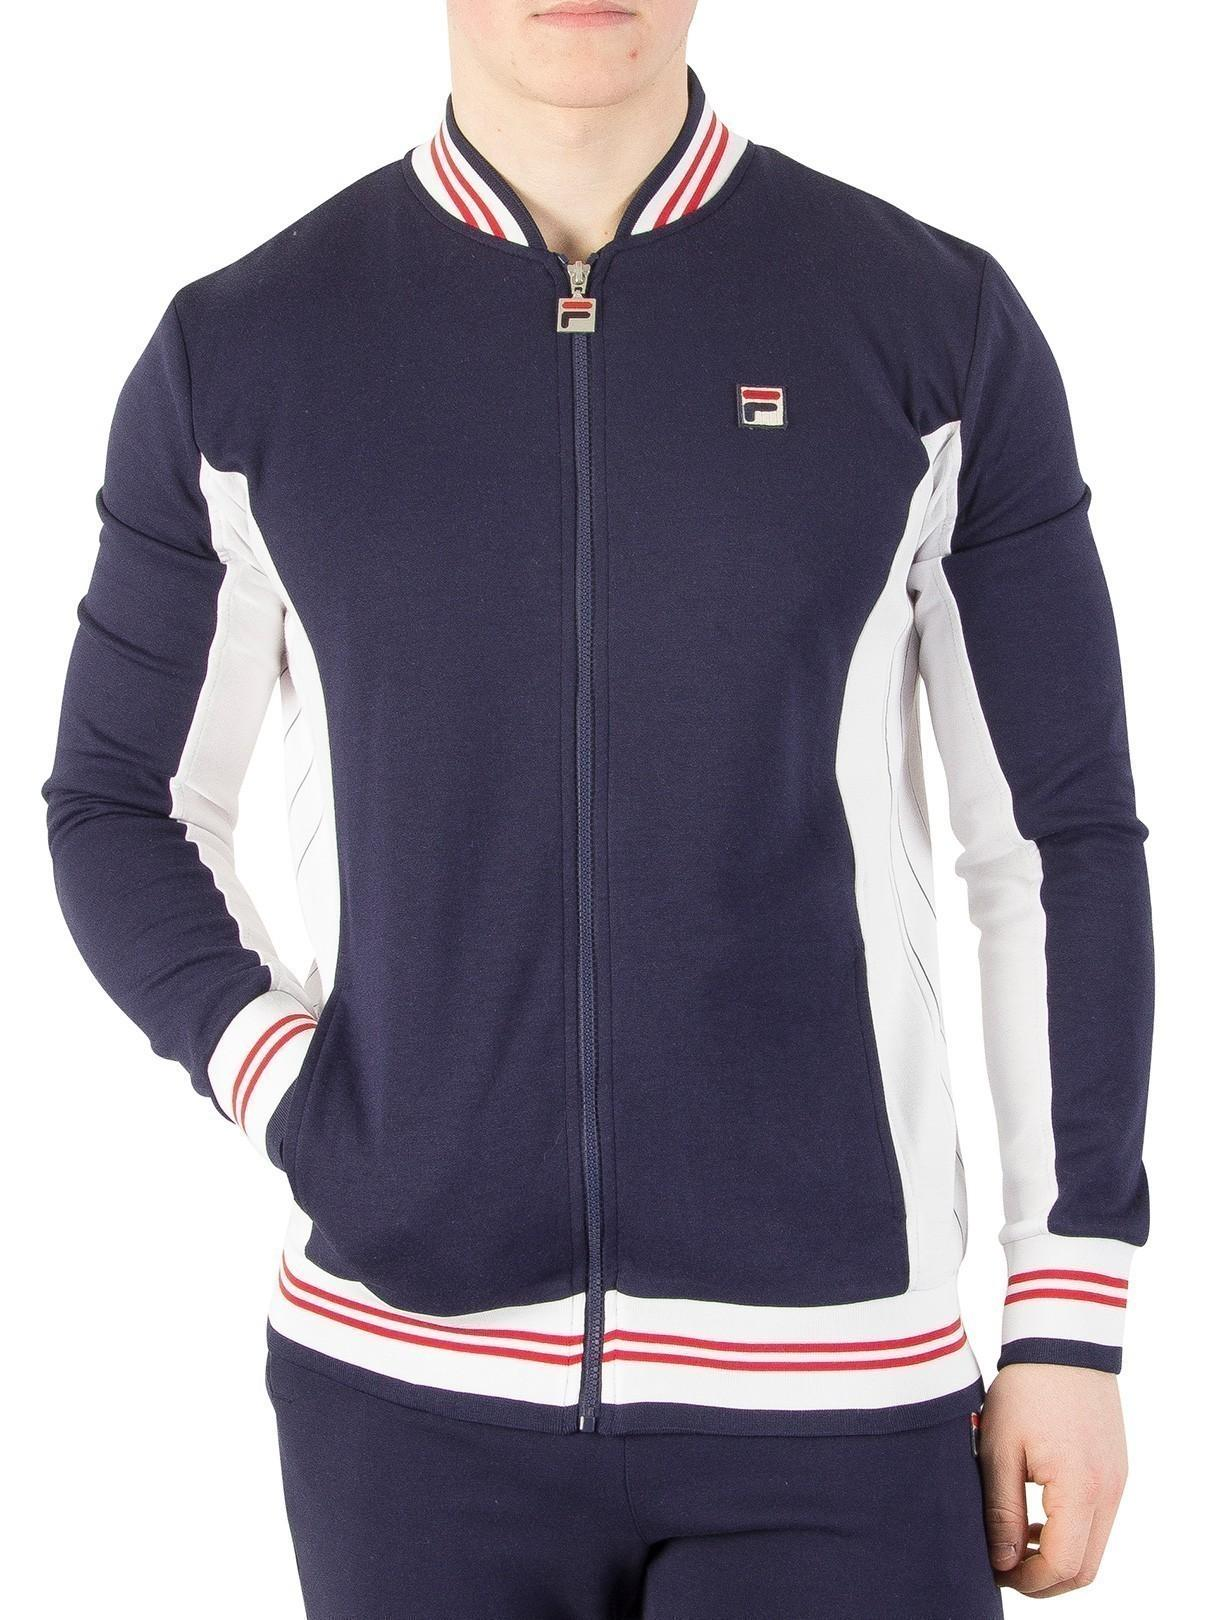 ceaf8e8395c3 Lyst - Fila Peacoat white chinese Red Settanta Zip Track Jacket in ...